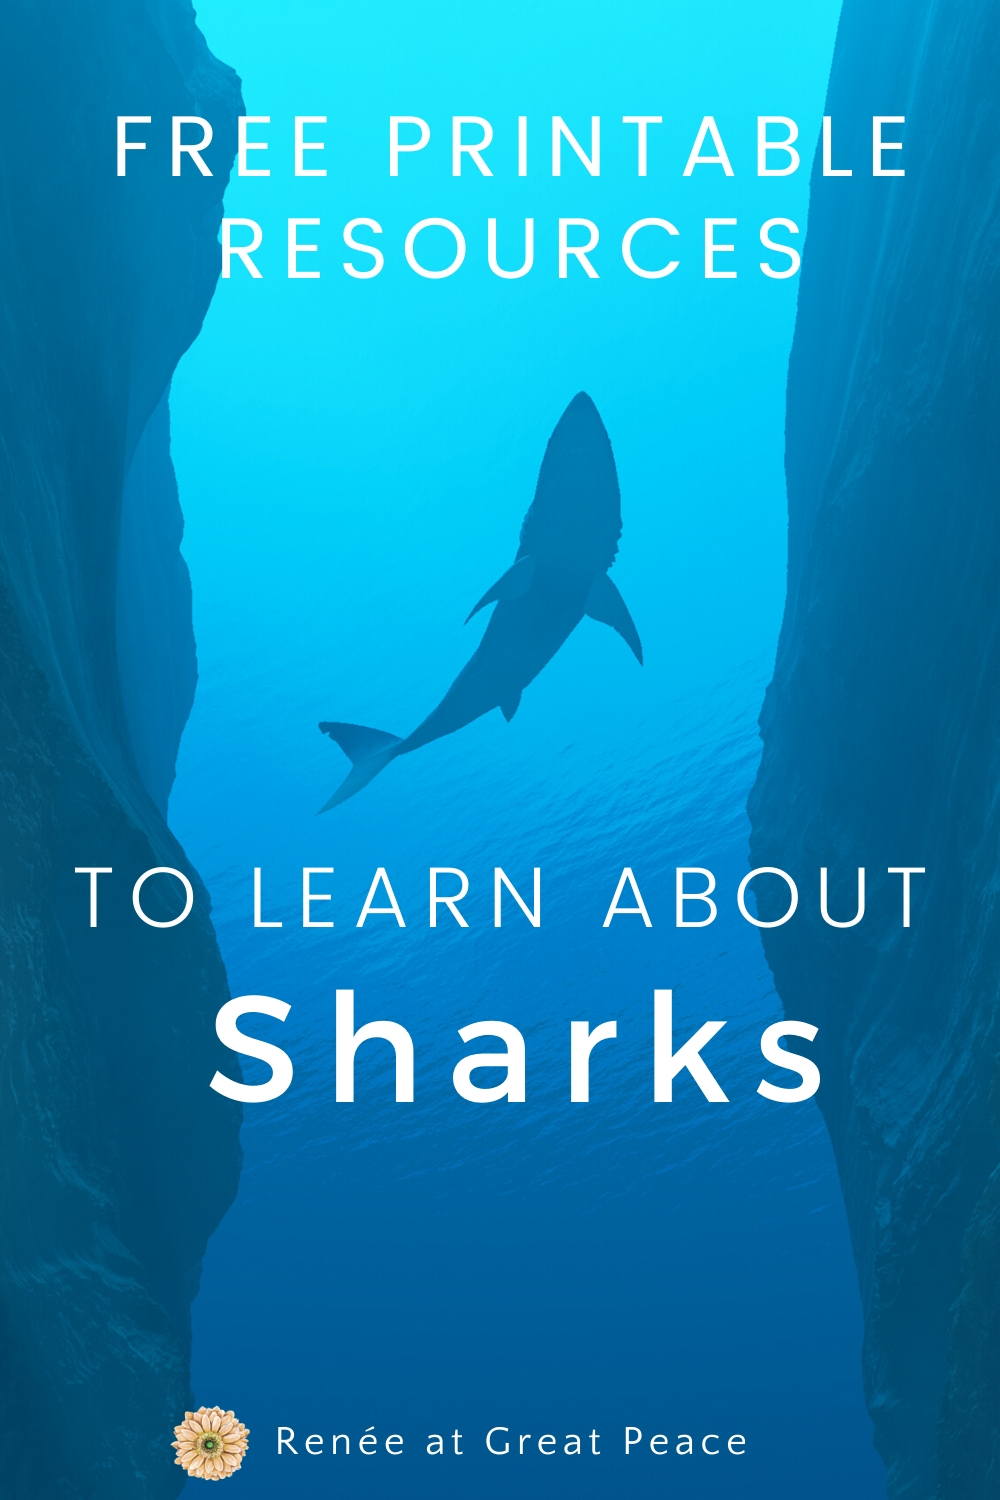 Printable Resources for Learning about Sharks | ReneeatGreatPeace.com #homeschooling #homeschool #education #sharks #printables #science #marinebiology